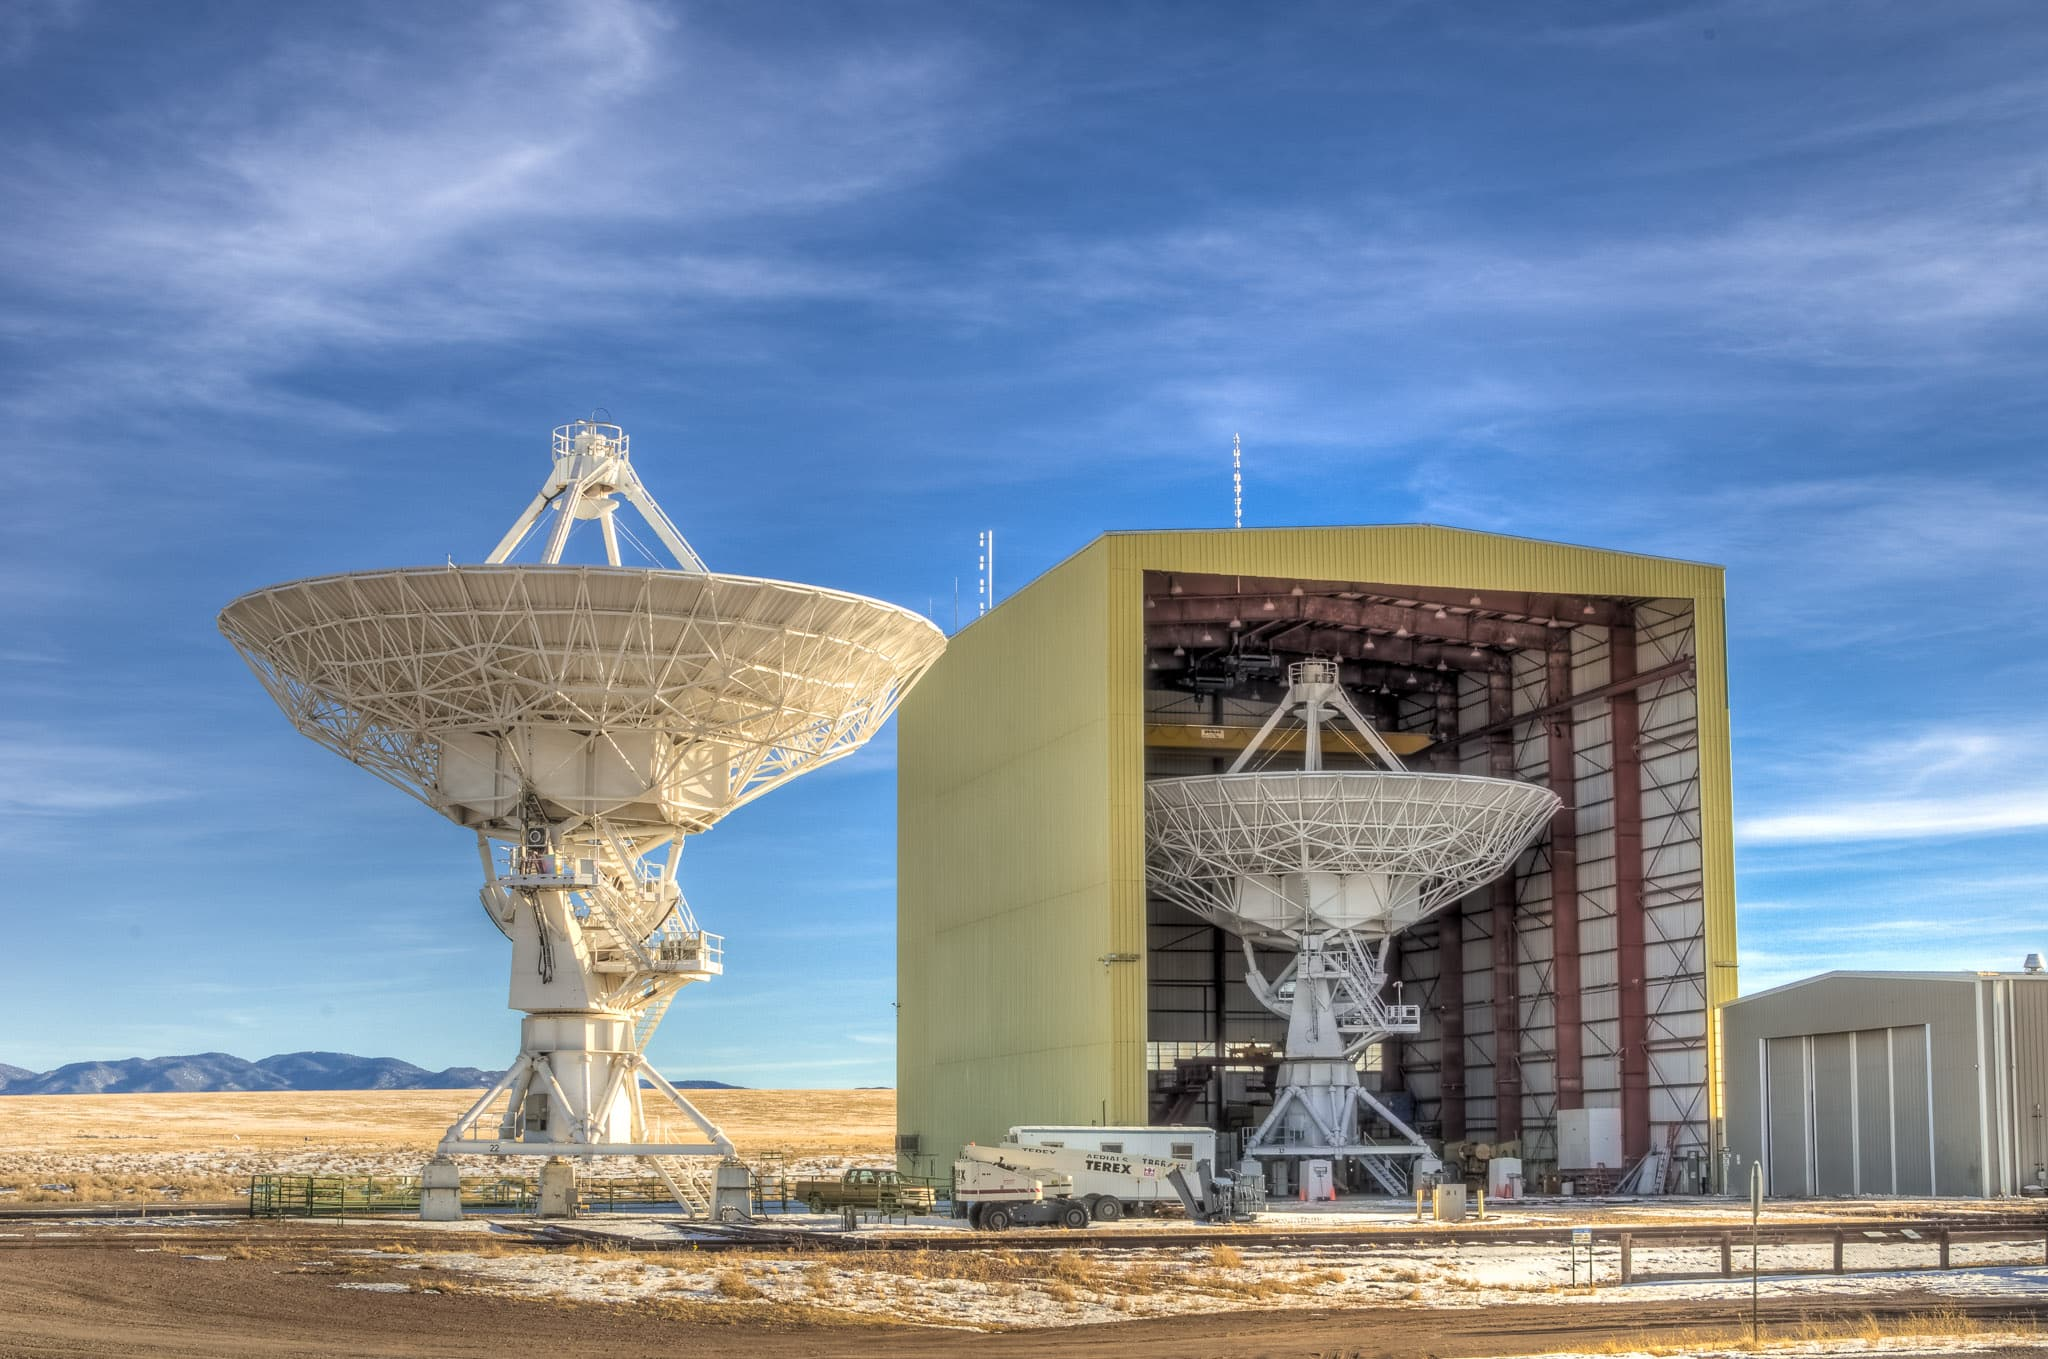 Back end of one of the radio telescopes of the Very Large Array radio observatory, west of Socorro, New Mexico.